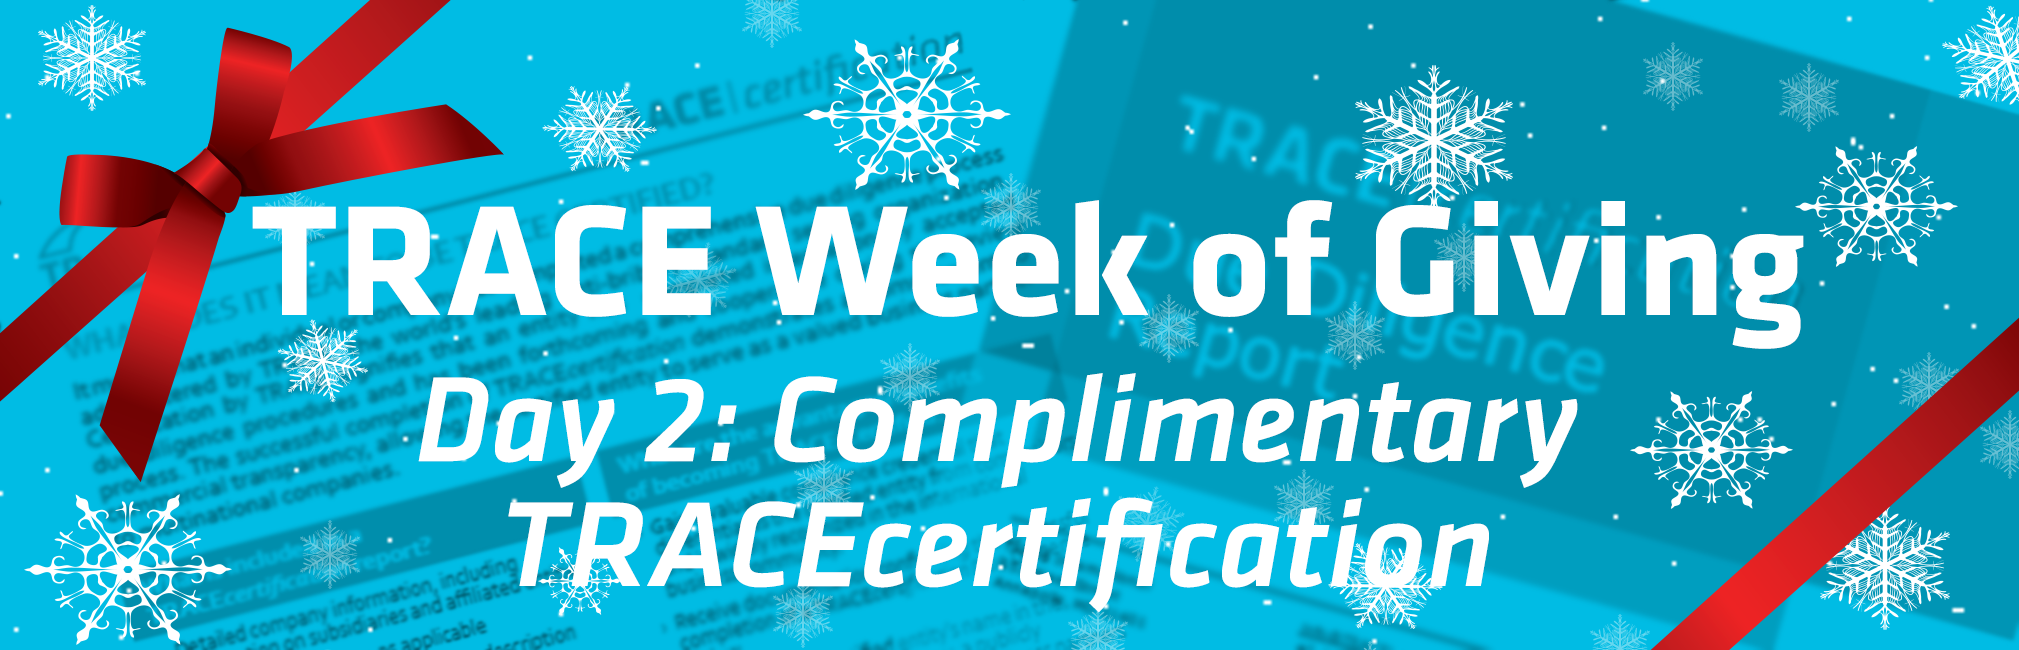 TRACE-week-of-giving-email-banner-day2